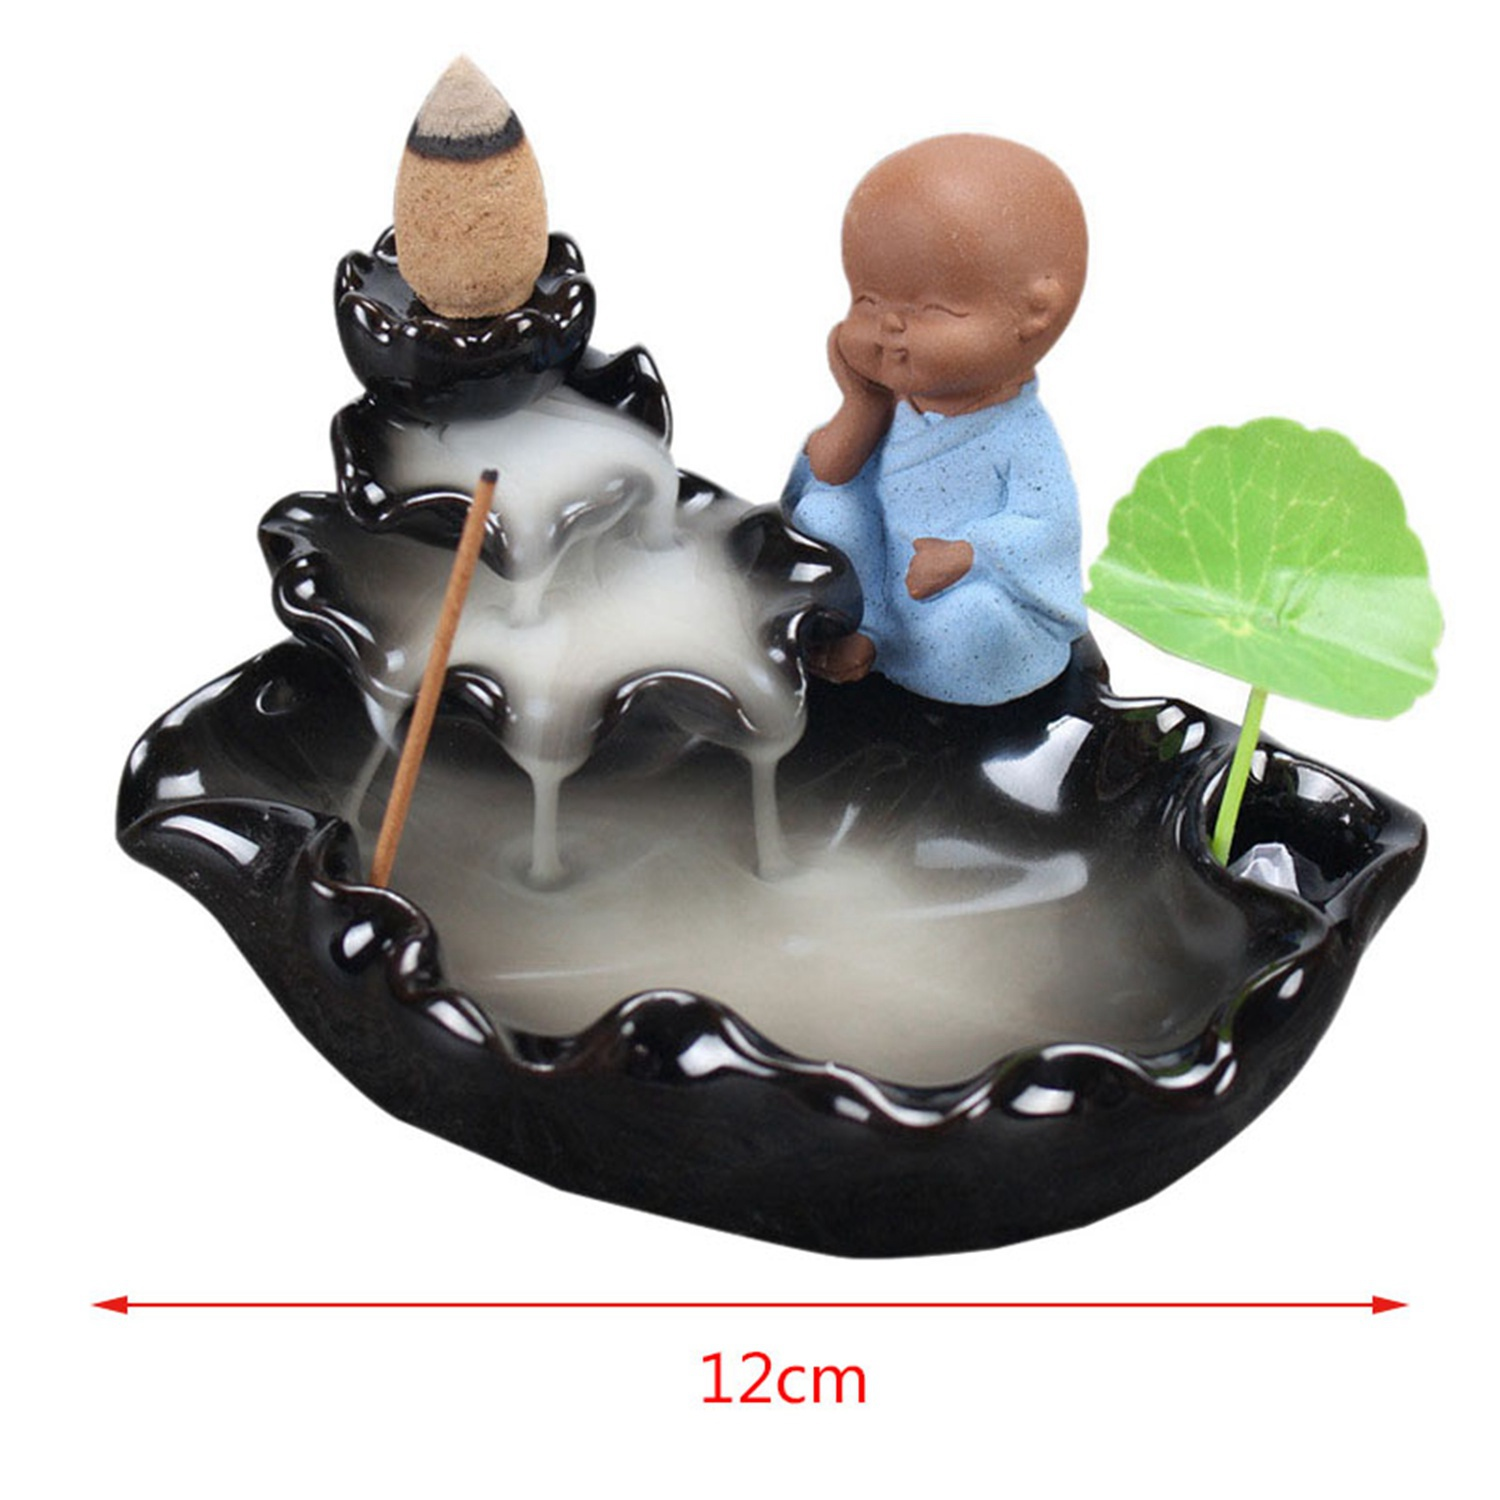 1x Little Monk Backflow Incense Burner Ceramic Cone Waterfall Incense 50 Piece Natural Backflow Buddha Cone Incense Buy Online At Best Prices In Pakistan Daraz Pk